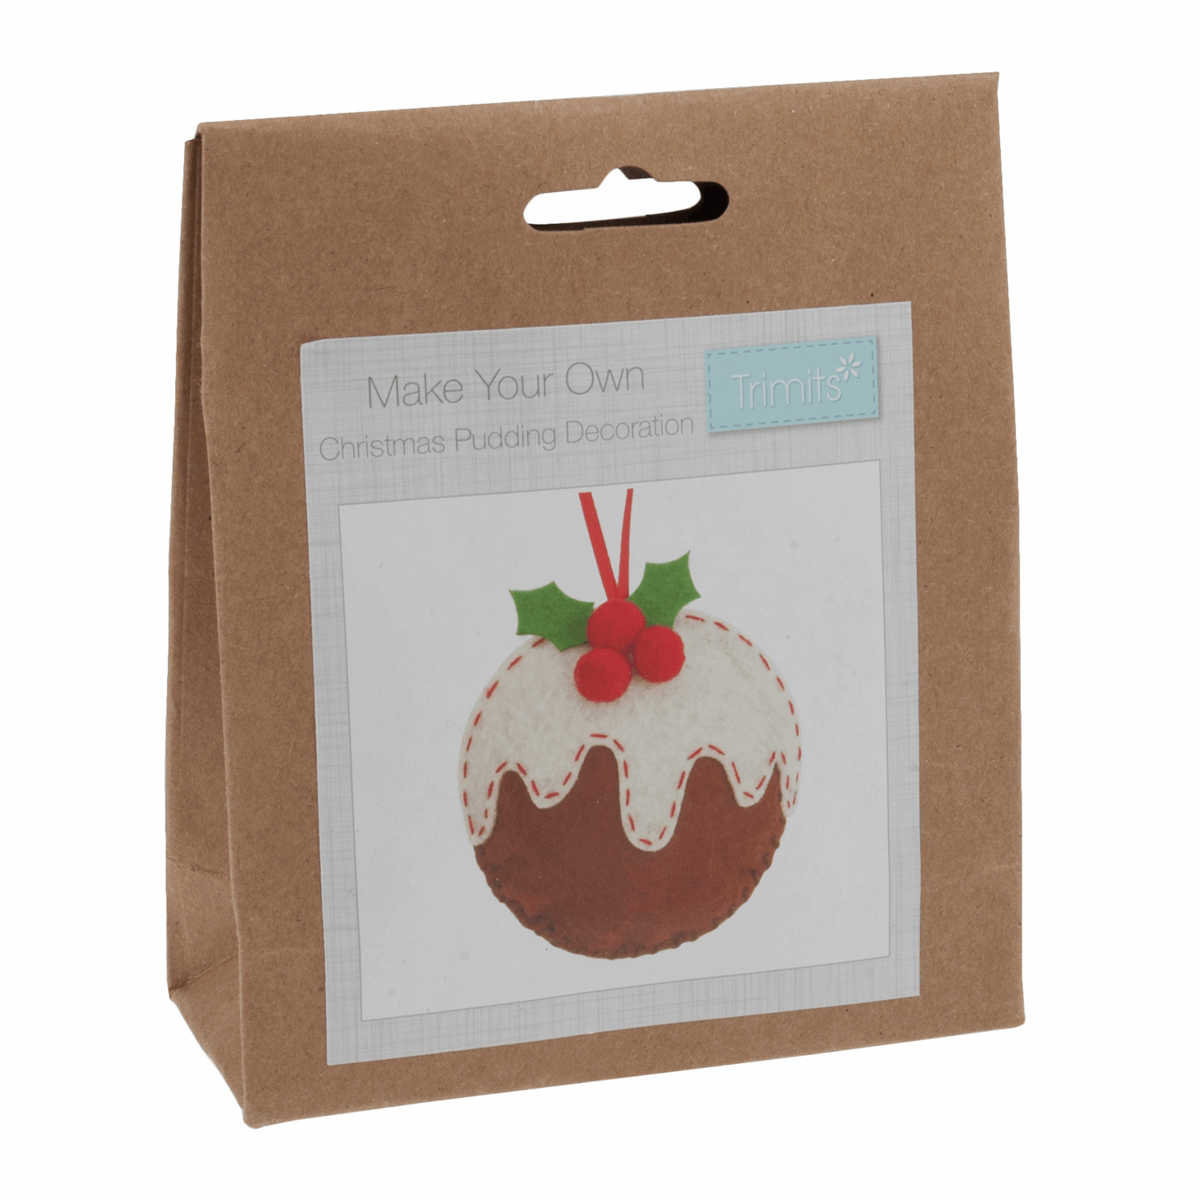 Picture of Felt Decoration Kit: Christmas: Christmas Pudding